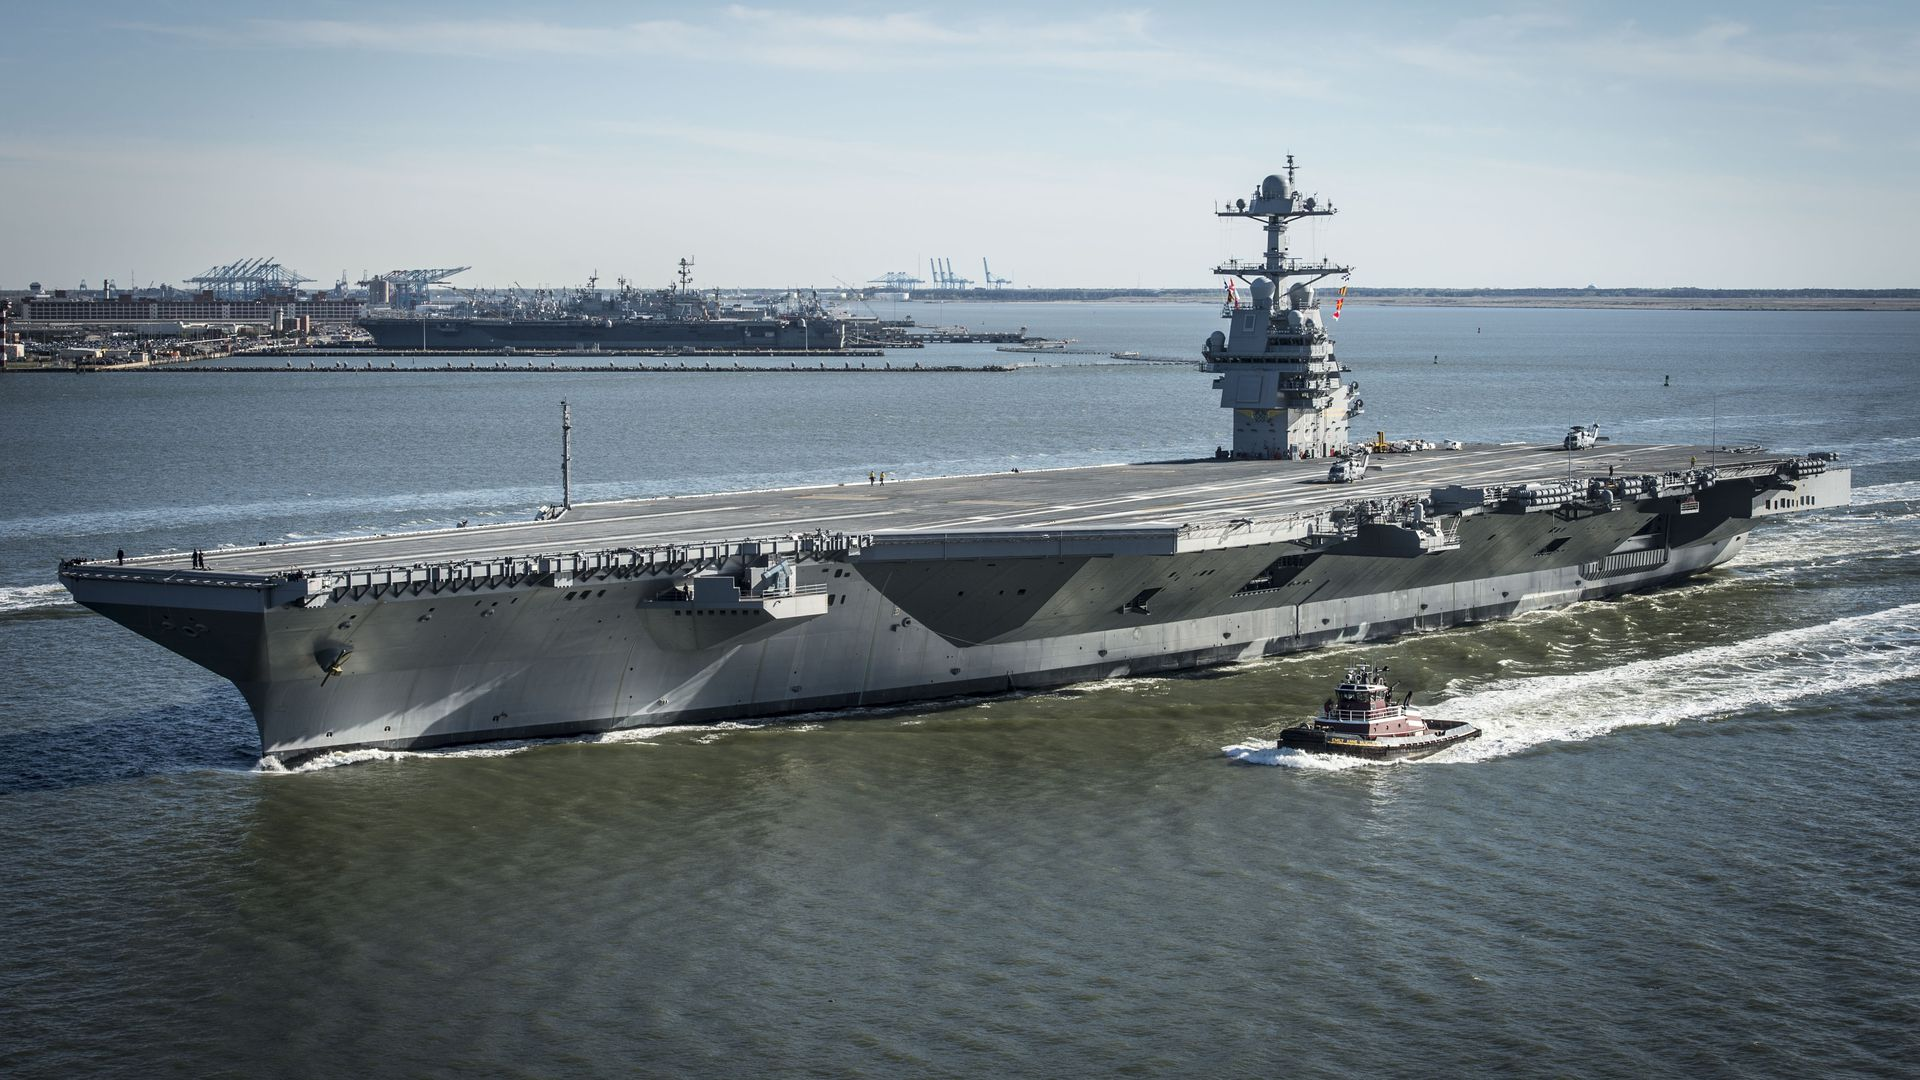 USS Gerald R. Ford, a Naval aircraft carrier